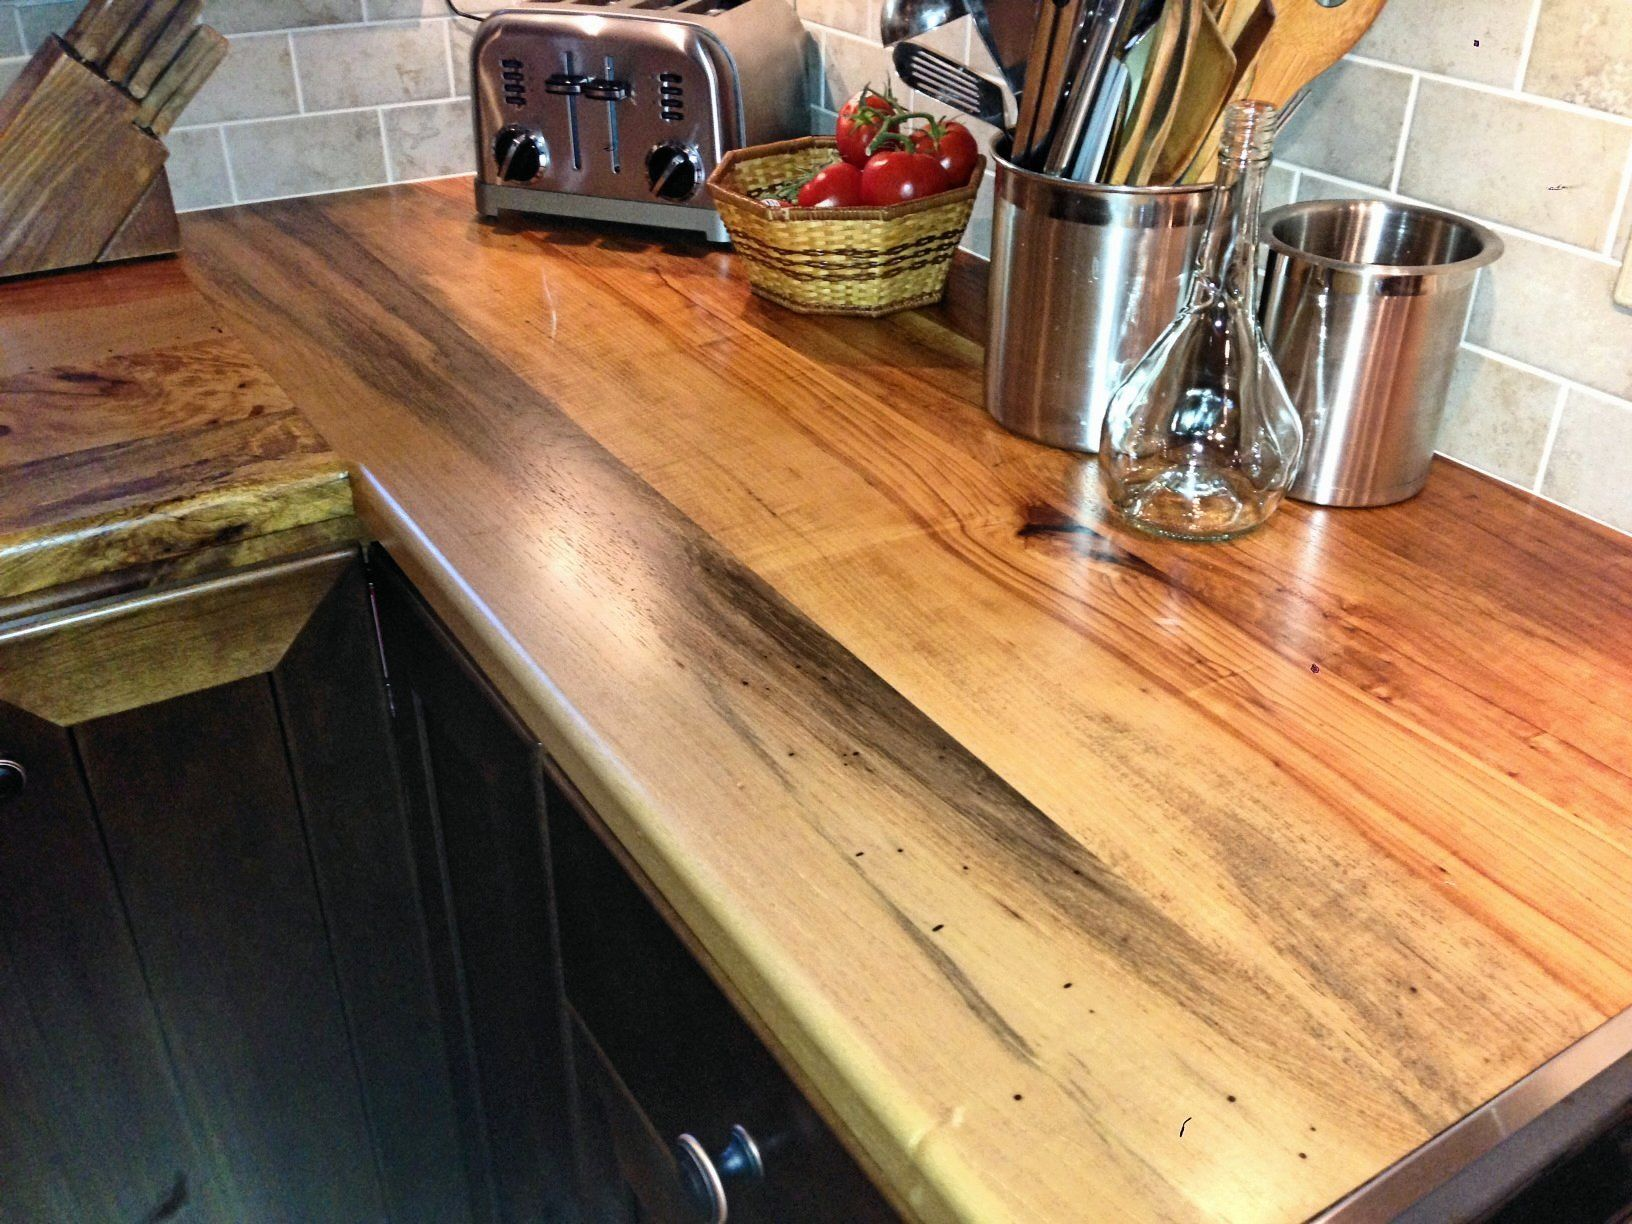 Butt Joint On A Texas Pecan Wood Countertop. Face Grain Construction With  Waterlox Finish